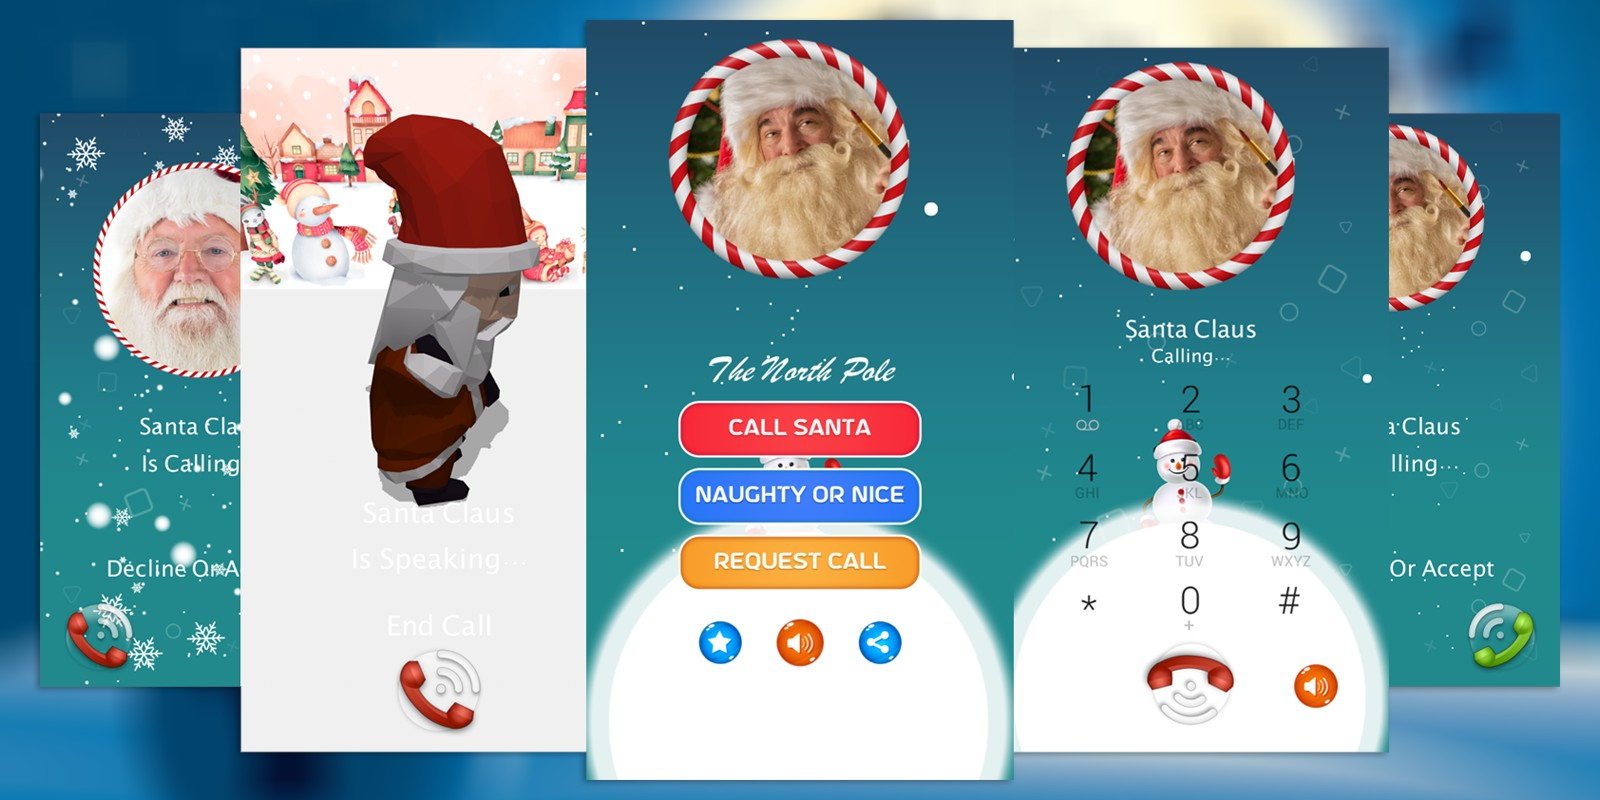 Call From Santa Claus For Christmas BuildBox 3